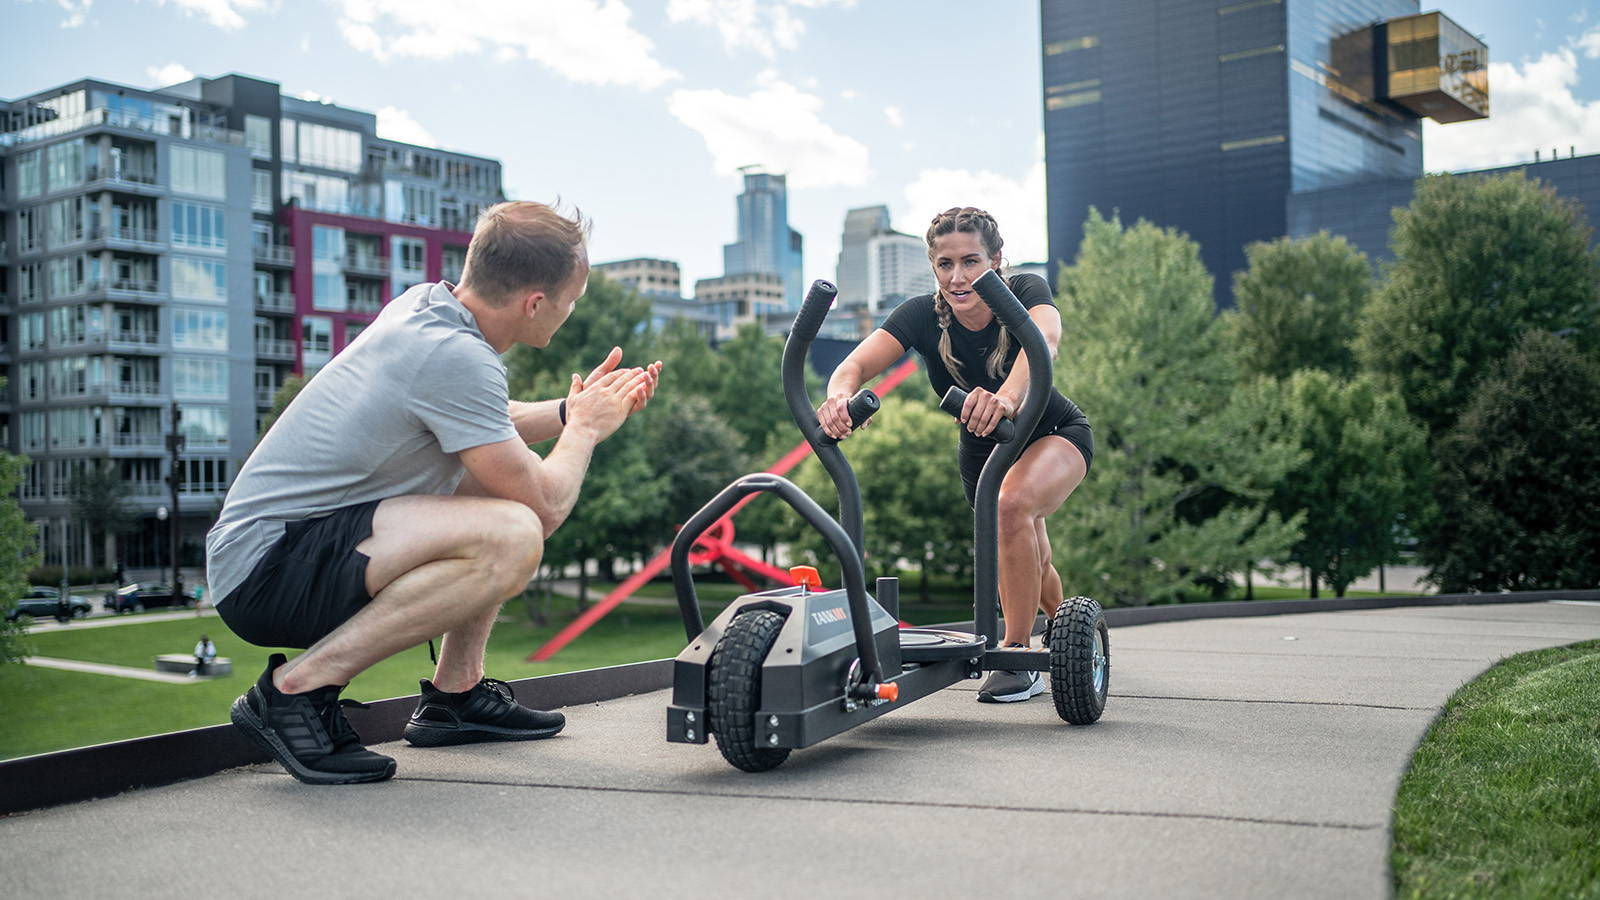 Two people working out using Tank M1 in city